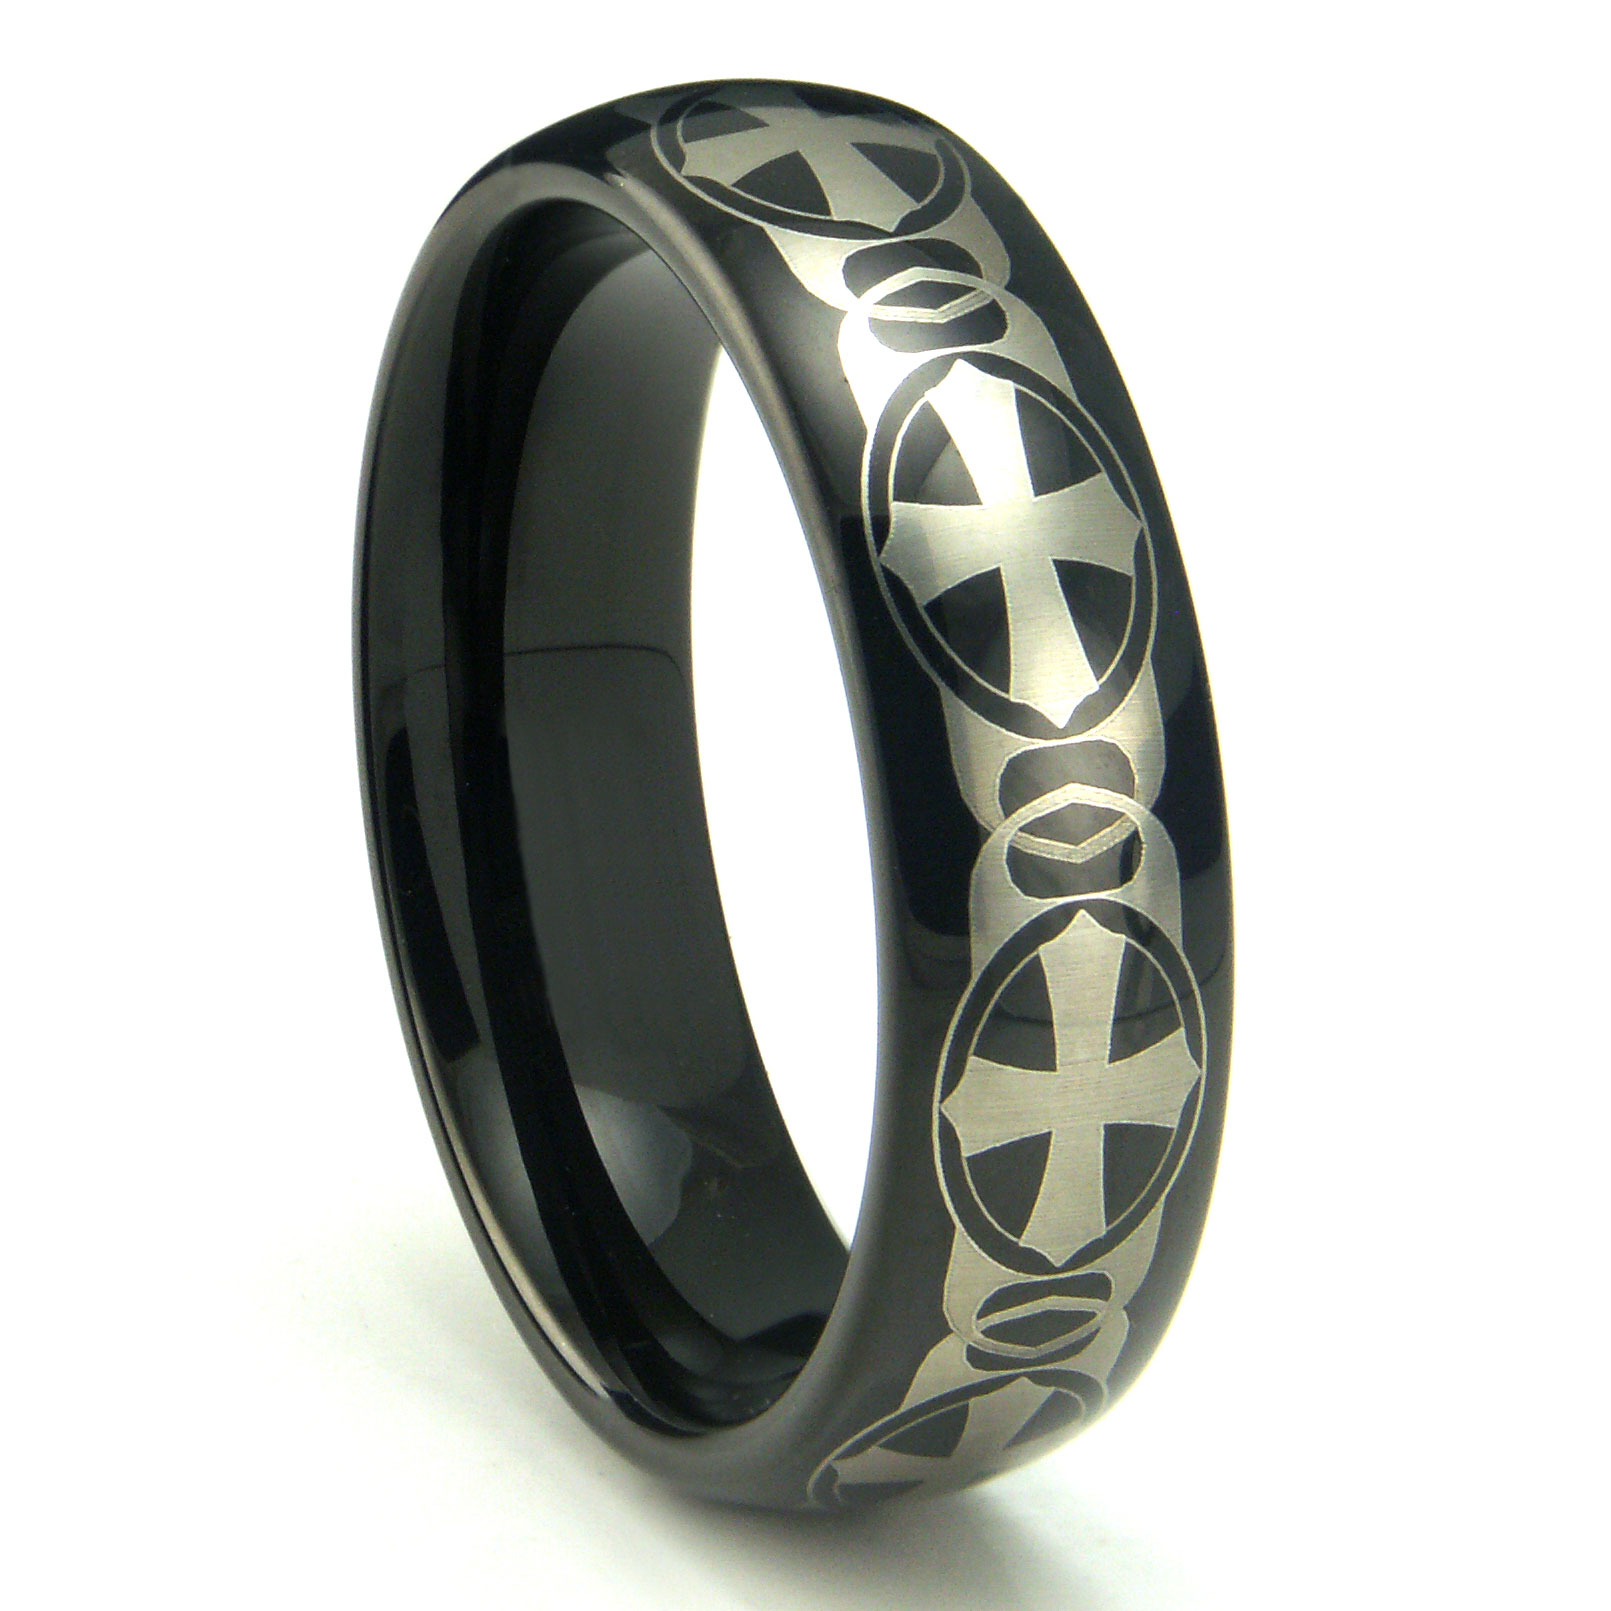 stainless buy b p z at band steel for prices mens rings ring sorella best black men india in online